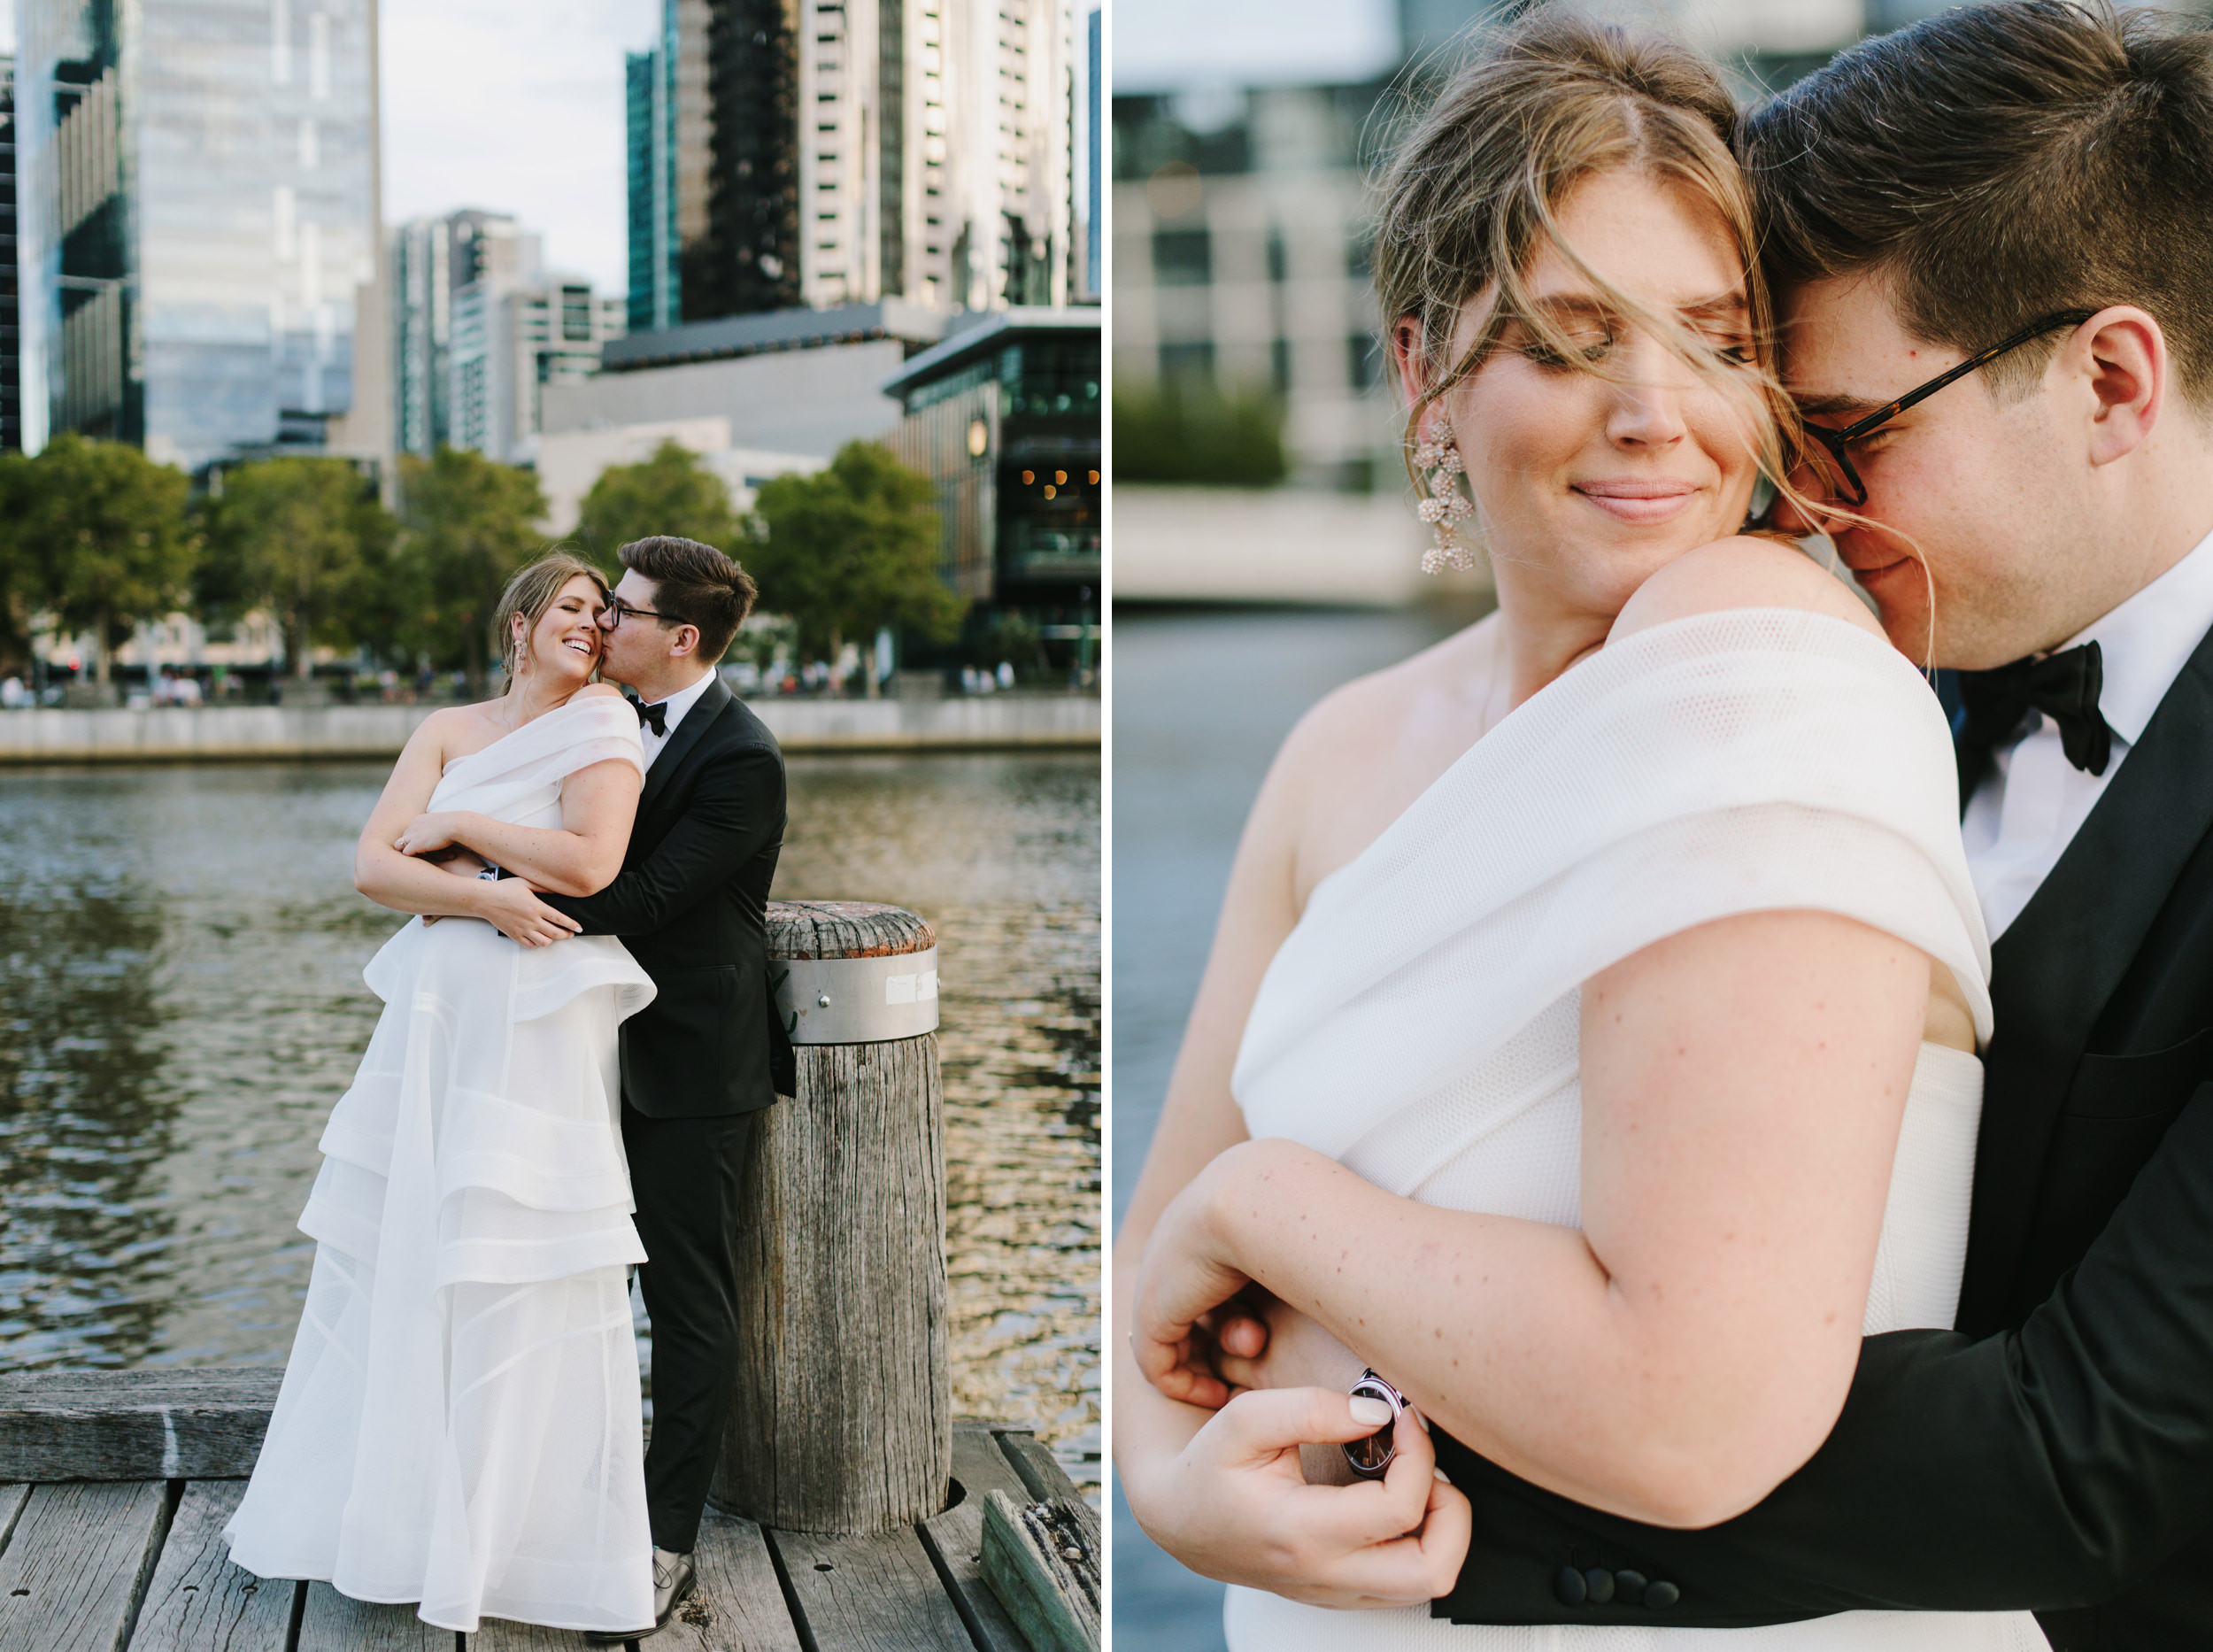 Melbourne_City_Rooftop_Wedding_Tyson_Brigette115.JPG